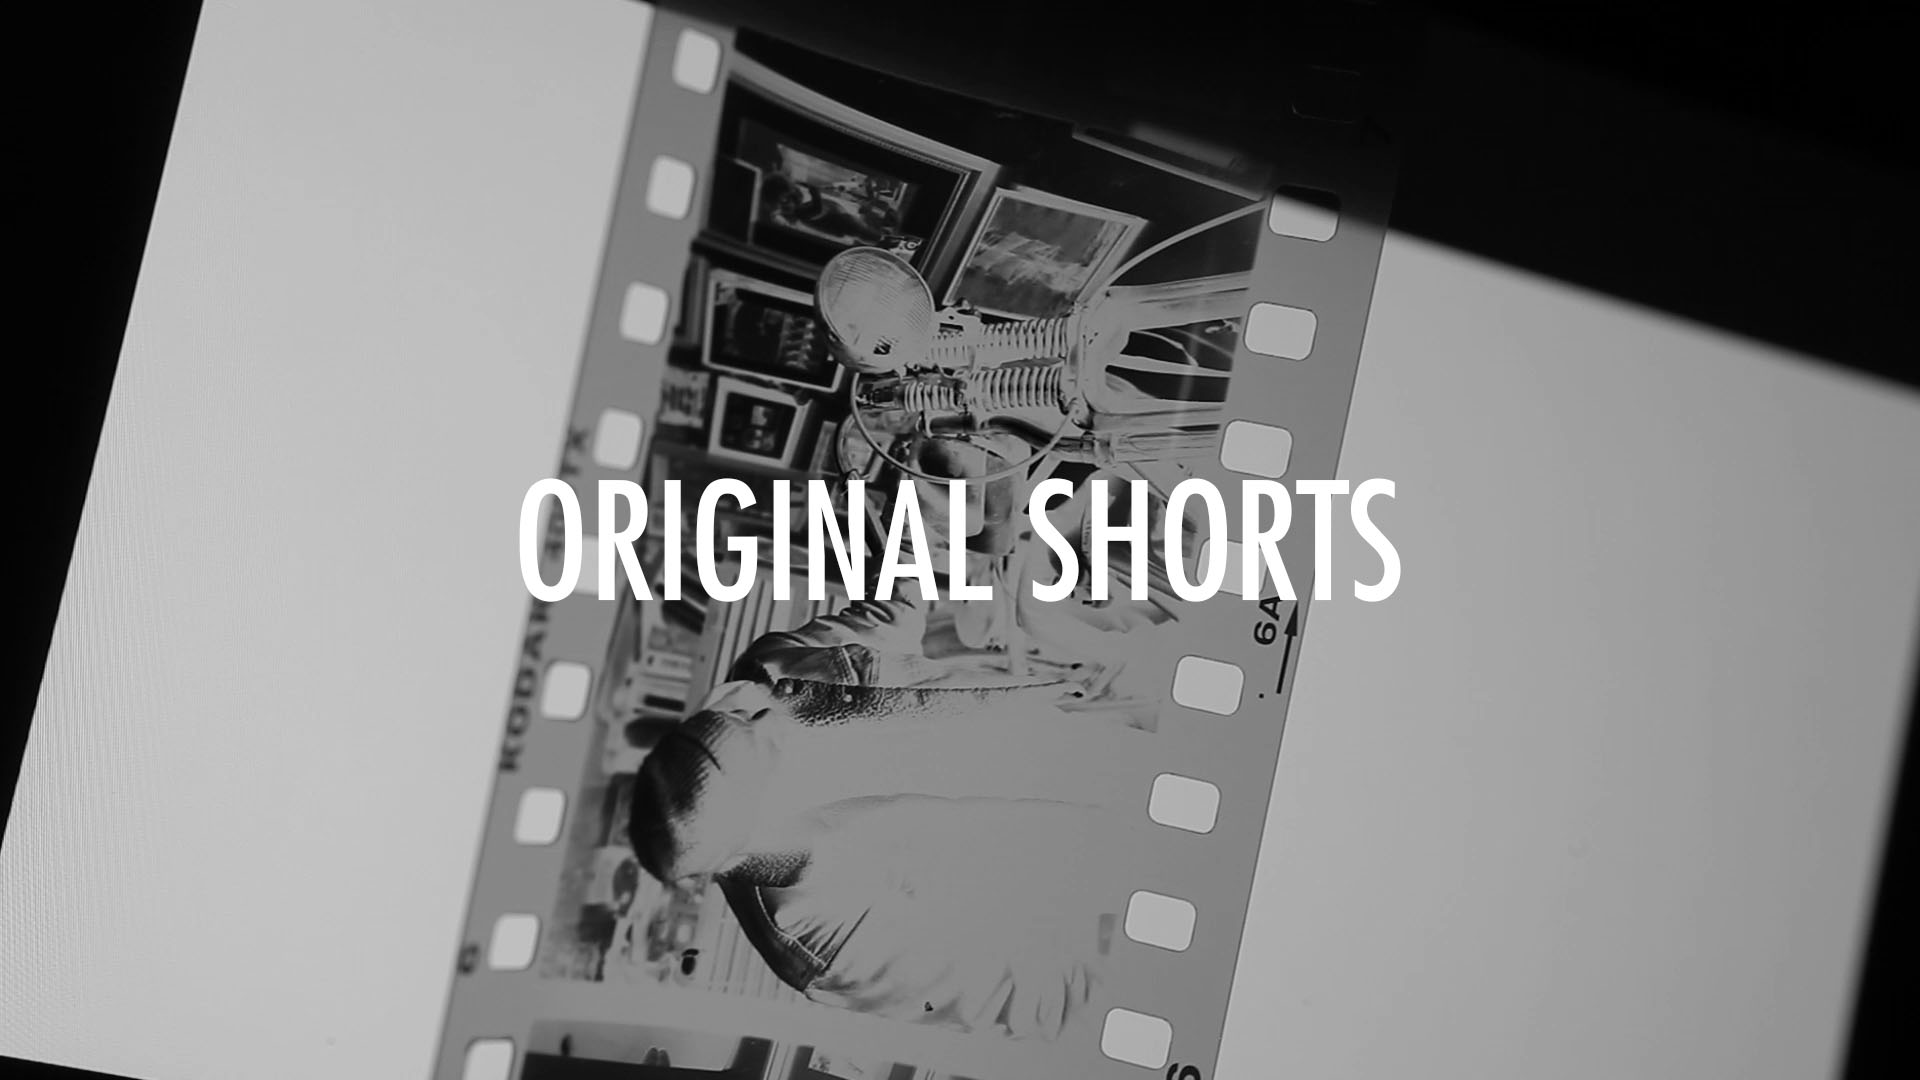 Original_shorts_text.jpg